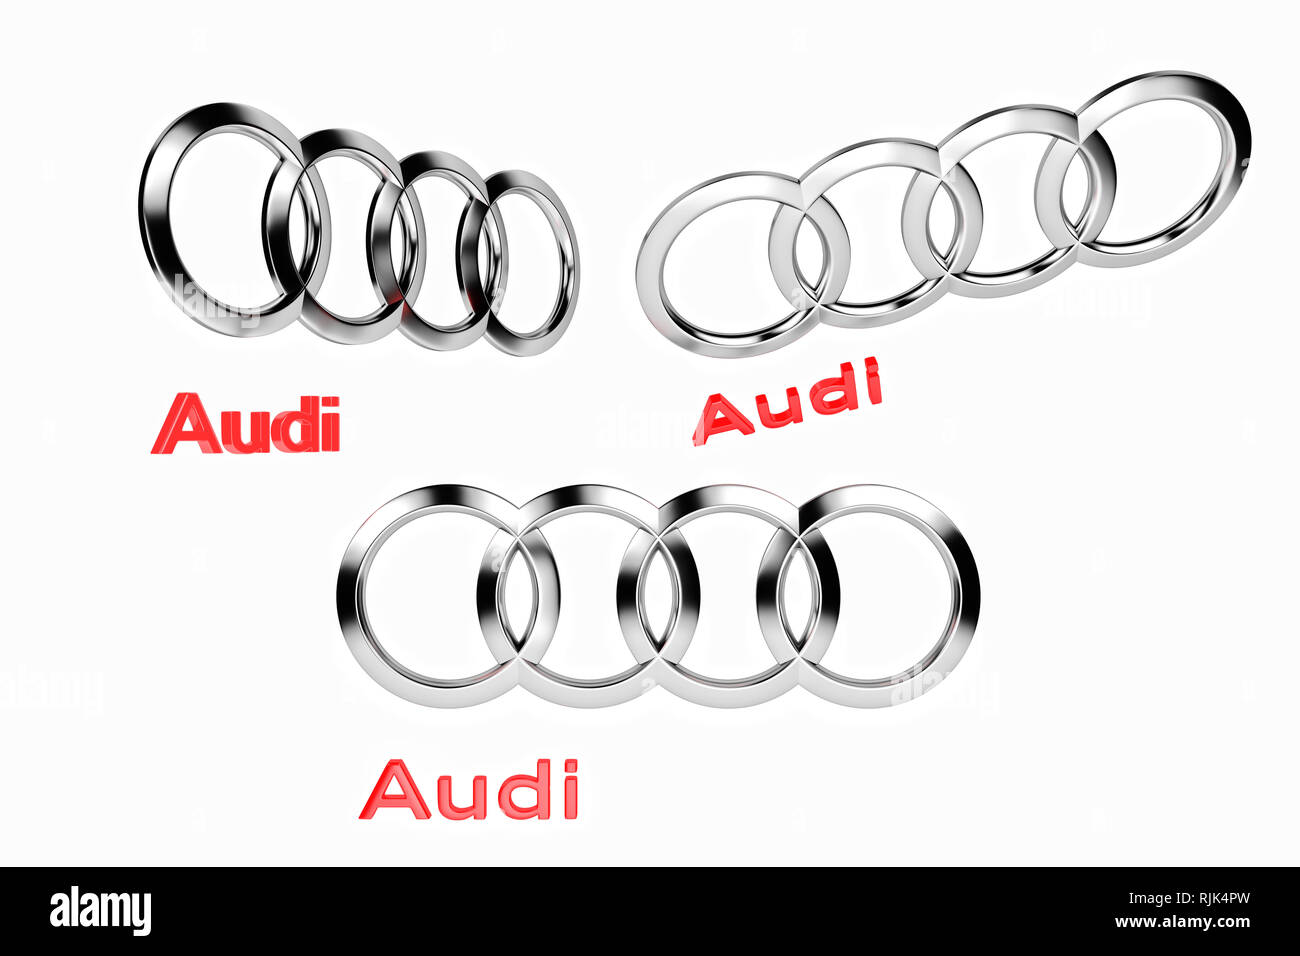 Audi Logo Cut Out Stock Images Pictures Alamy